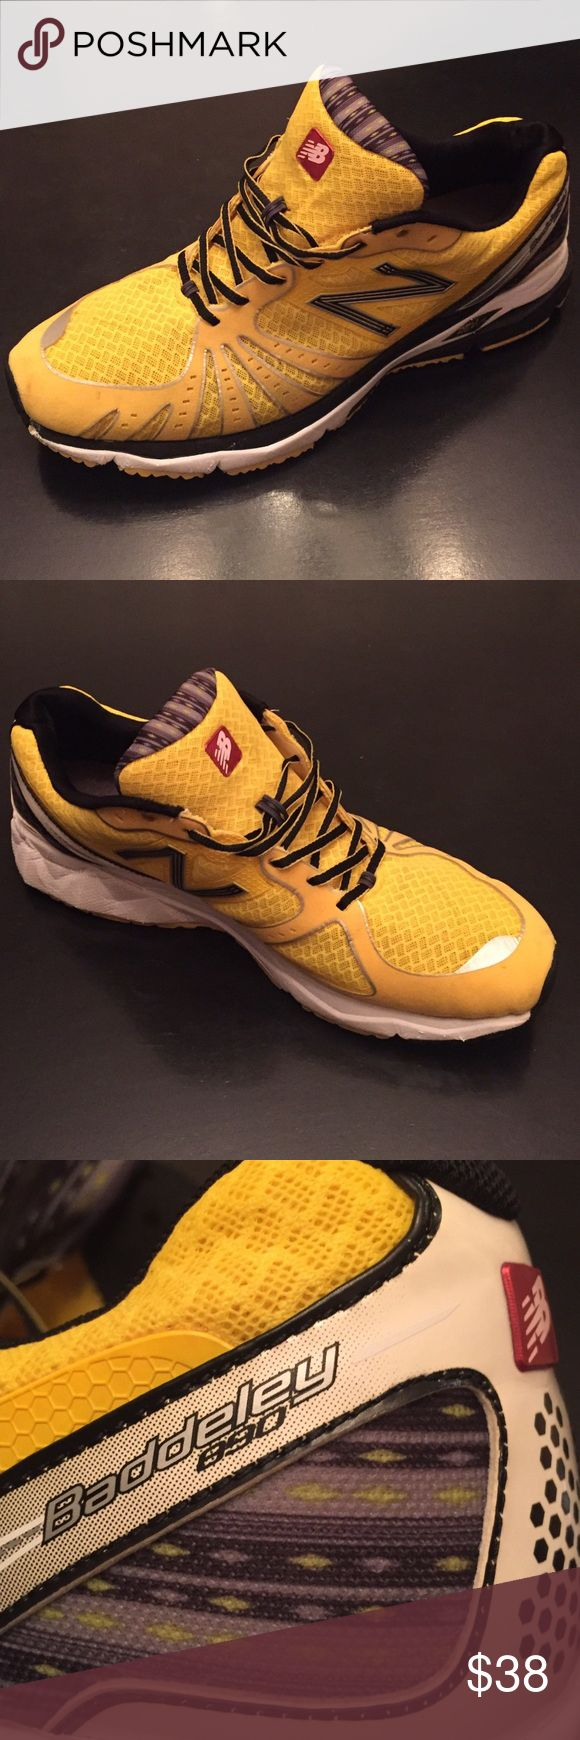 """New Balance MENS Baddeley 890 Running Shoes • 12.5 """"New Balance"""" Baddeley 890 MENS RUNNING SHOES • Yellow & Grey • these were only worn twice for a run each time and they did get a bit dirty on the bottom but that could probably come off with a wash • EUC • Men's 12.5 New Balance Shoes Sneakers"""